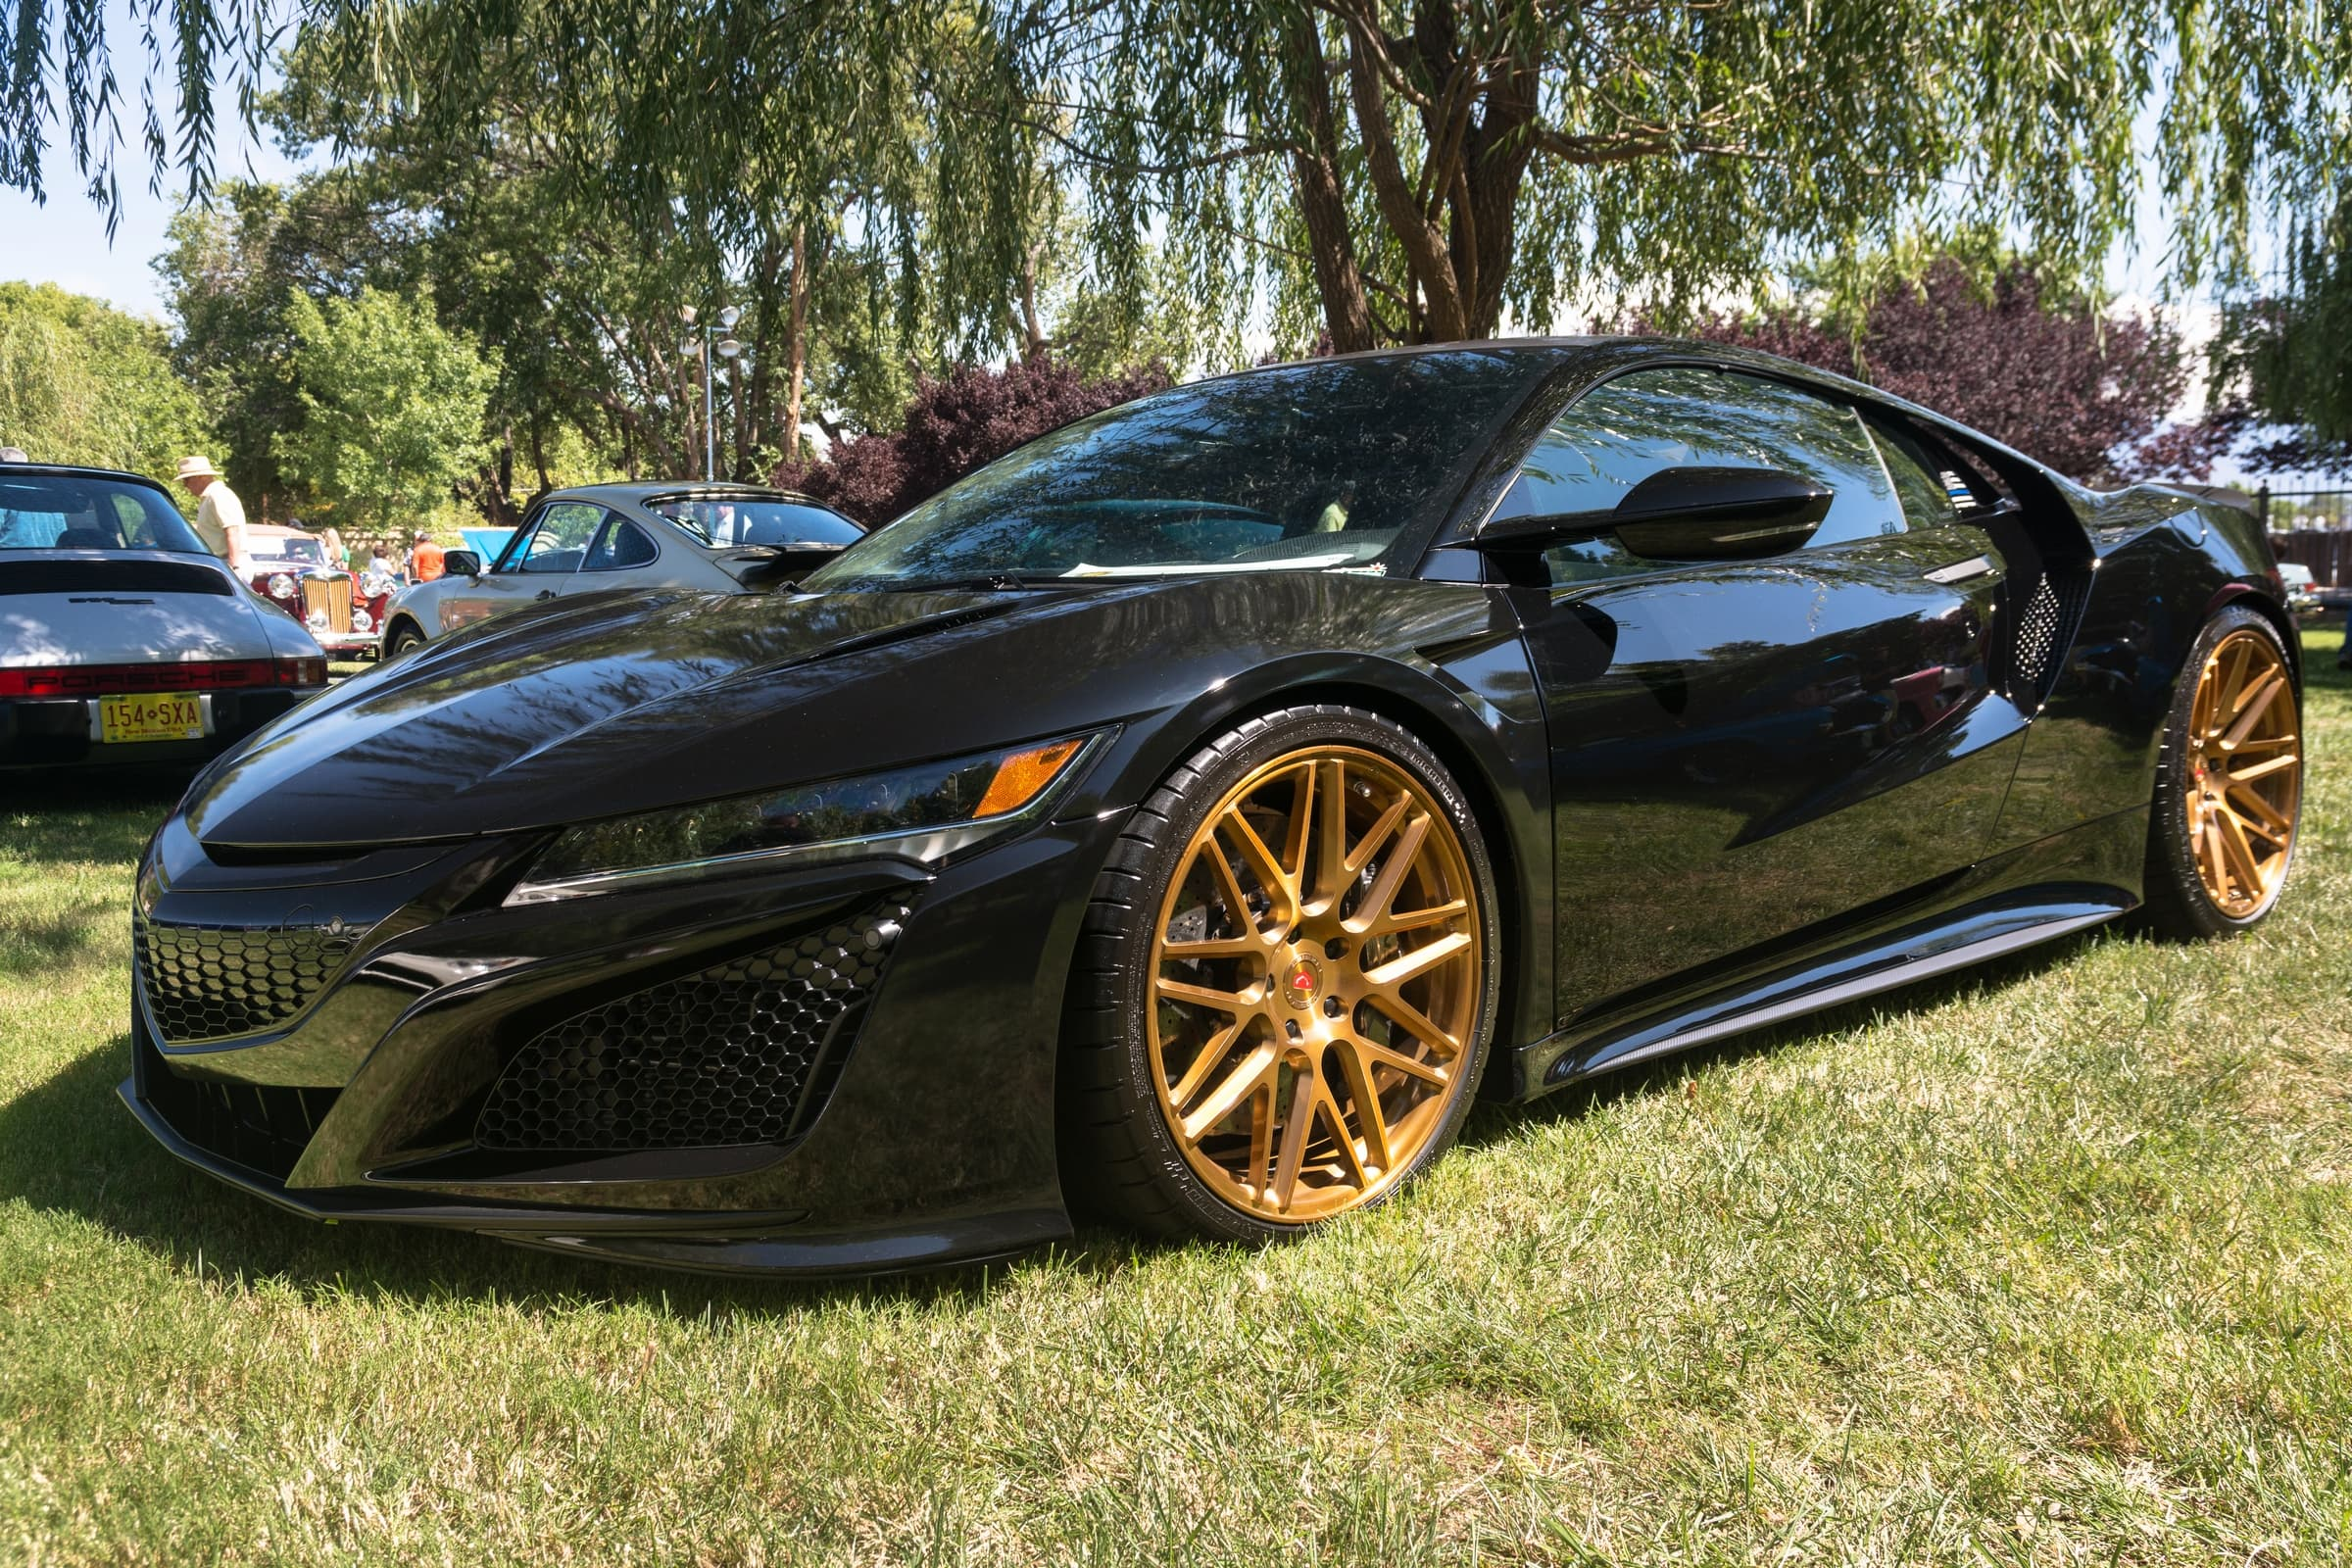 All Wallpapers Acura Nsx 2017 For Desktop